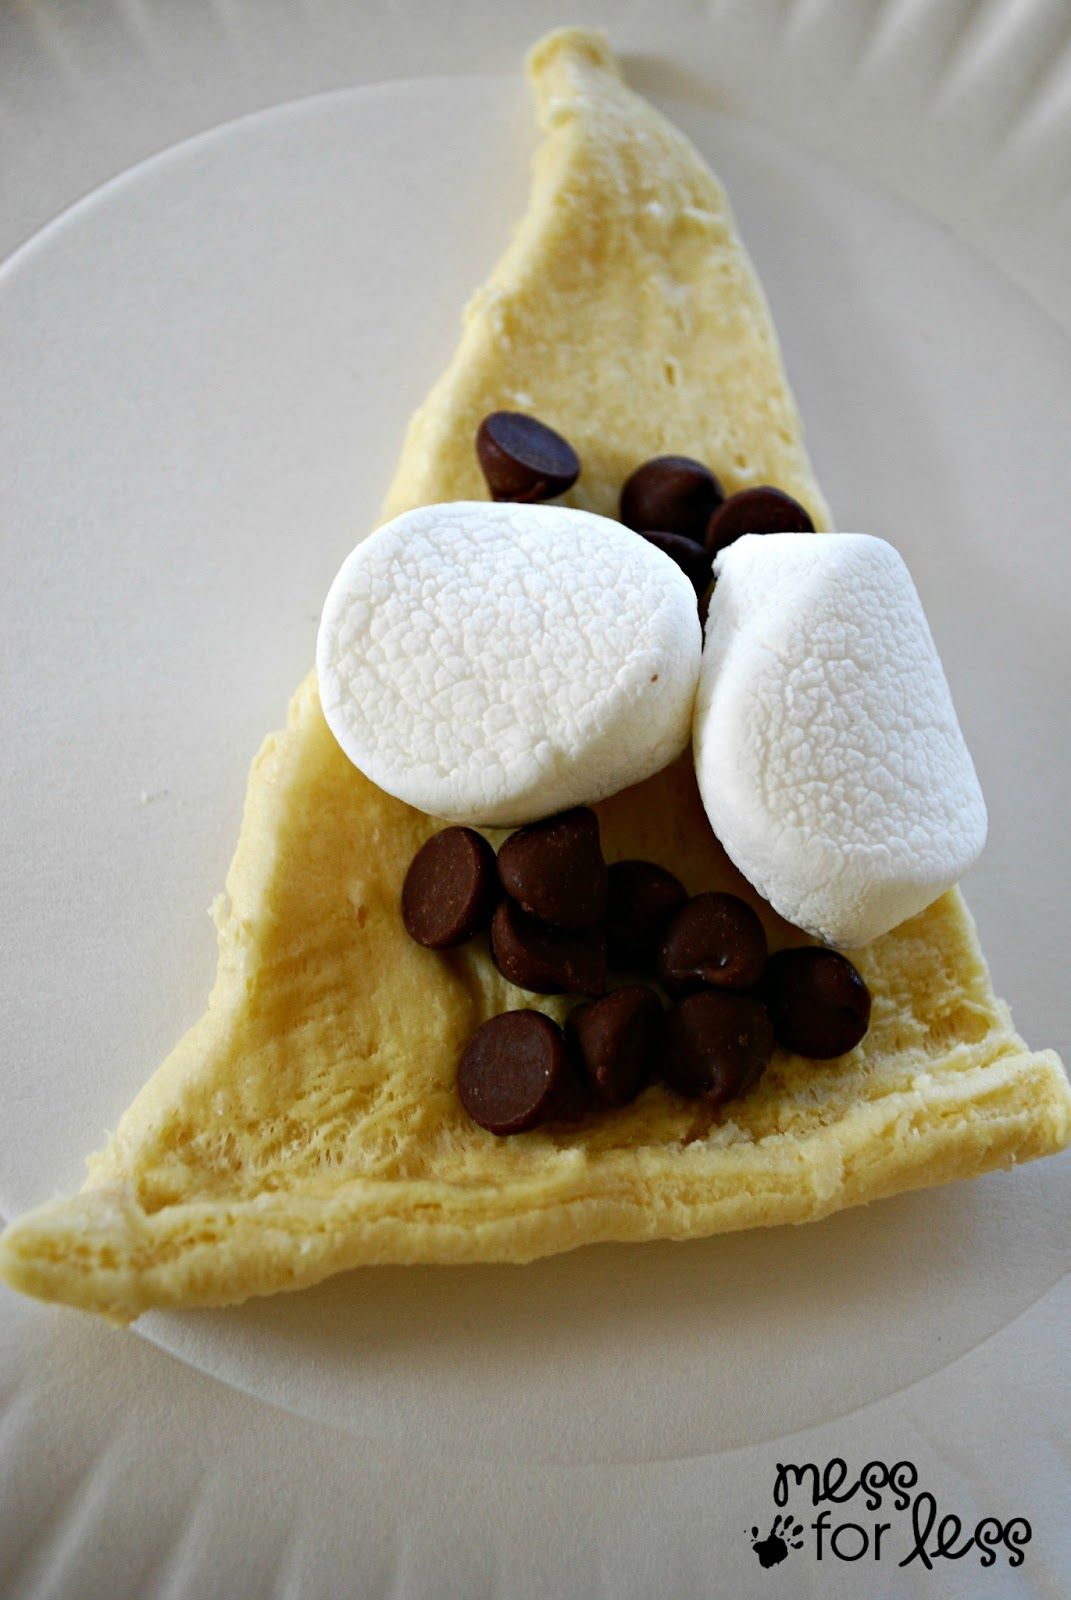 Pinterest Facebook Twitter Google+ Yummly Email Print StumbleUpon Who doesn't love a good crescent roll recipe? From a breakfast, to a main dish to a dessert, you can truly do it all with crescent rolls. Today's crescent roll s'mores are sure to become a family favorite. How do I know? Well, I've combined all the...Read More »